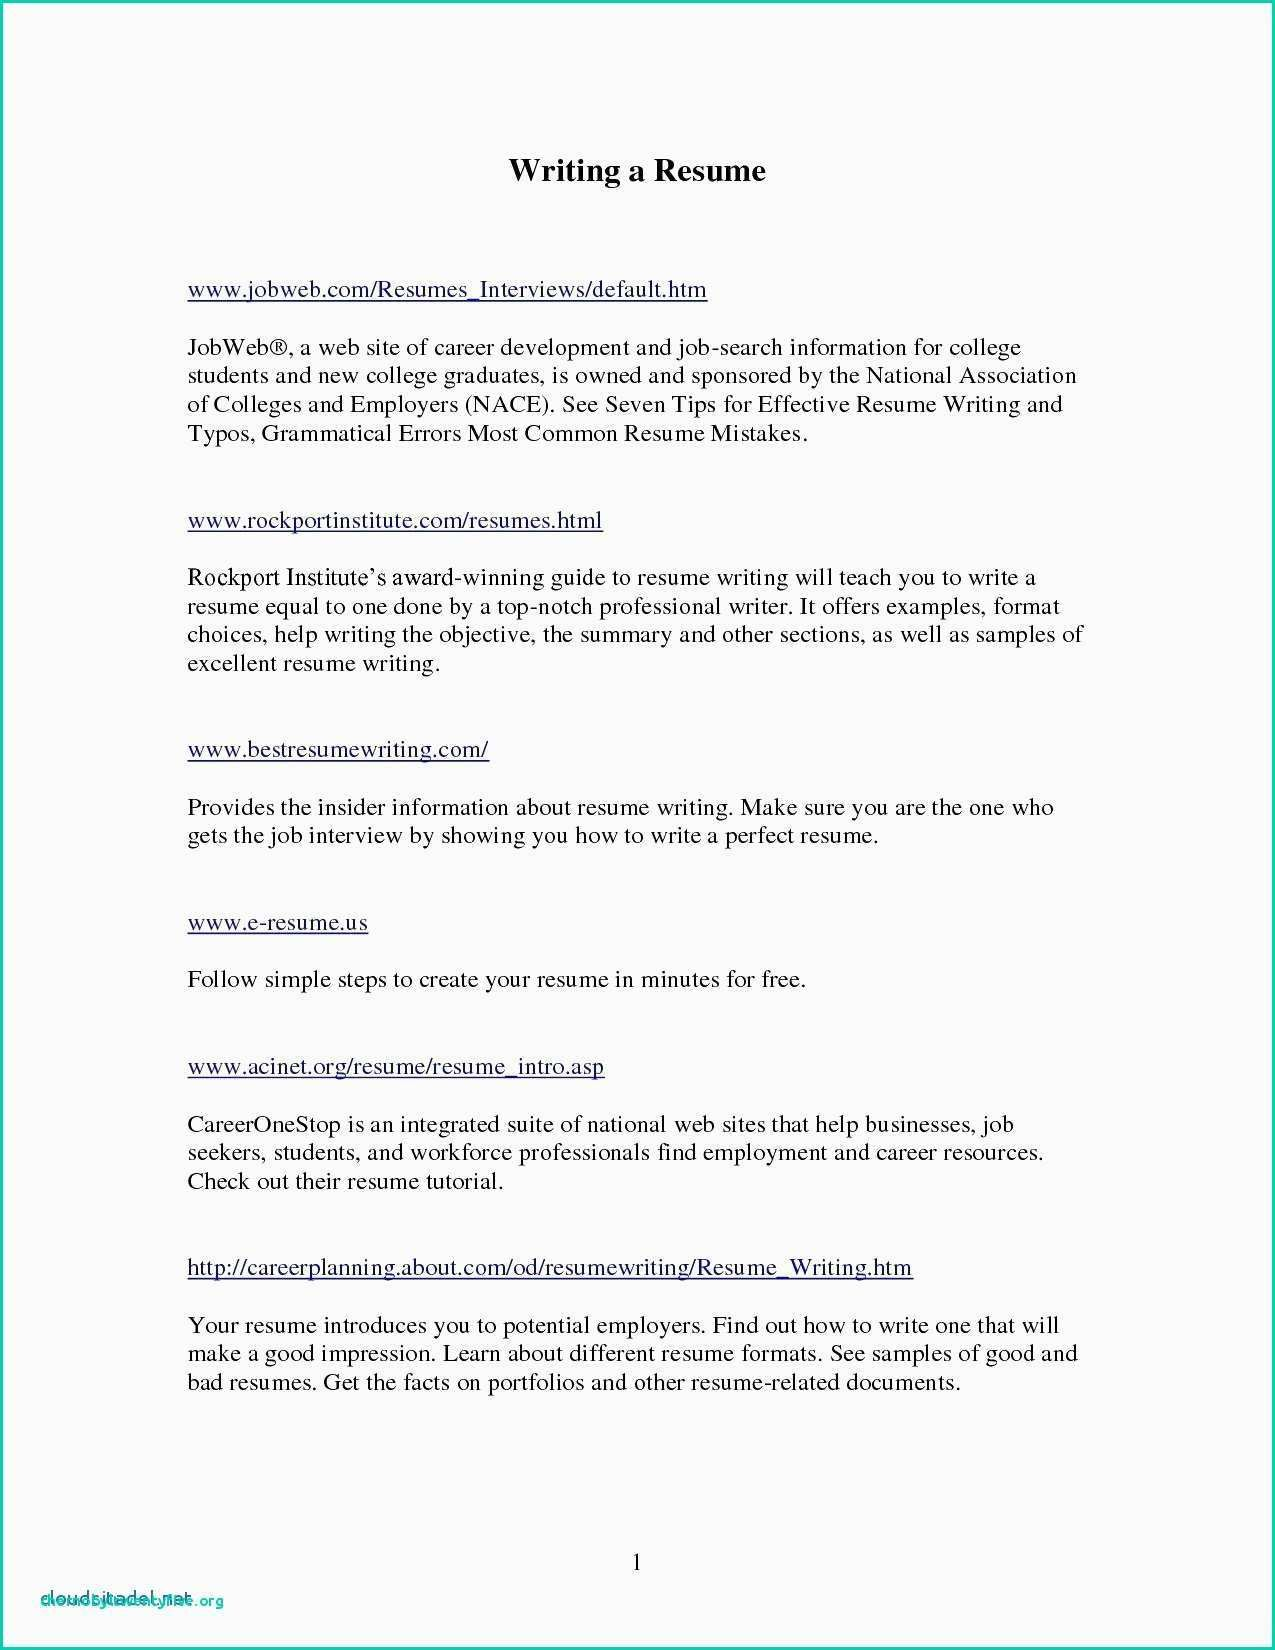 Covering Letter Sample For Resume Excellent Cover Letter Example Glendale Community Document Template